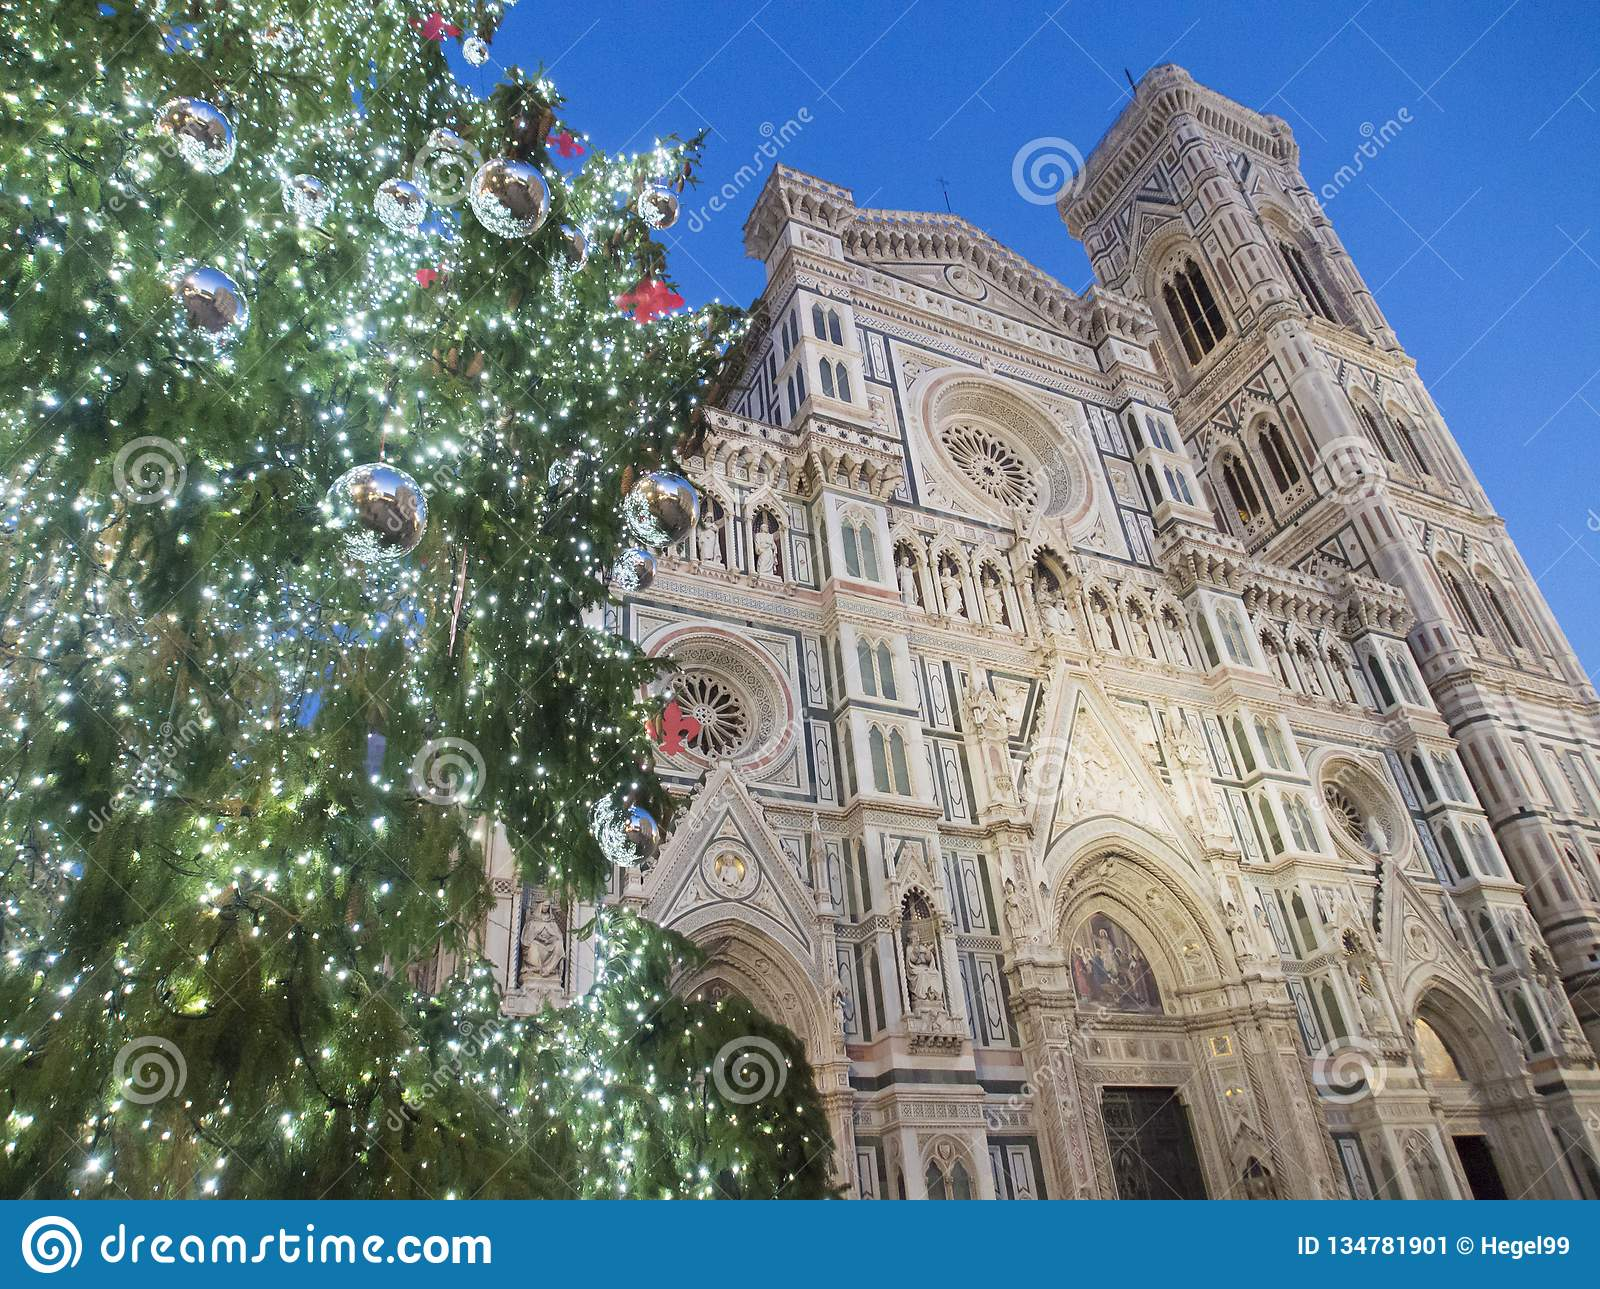 Christmas In Florence Italy.Italy Florence The Cathedral And Christmas Tree Stock